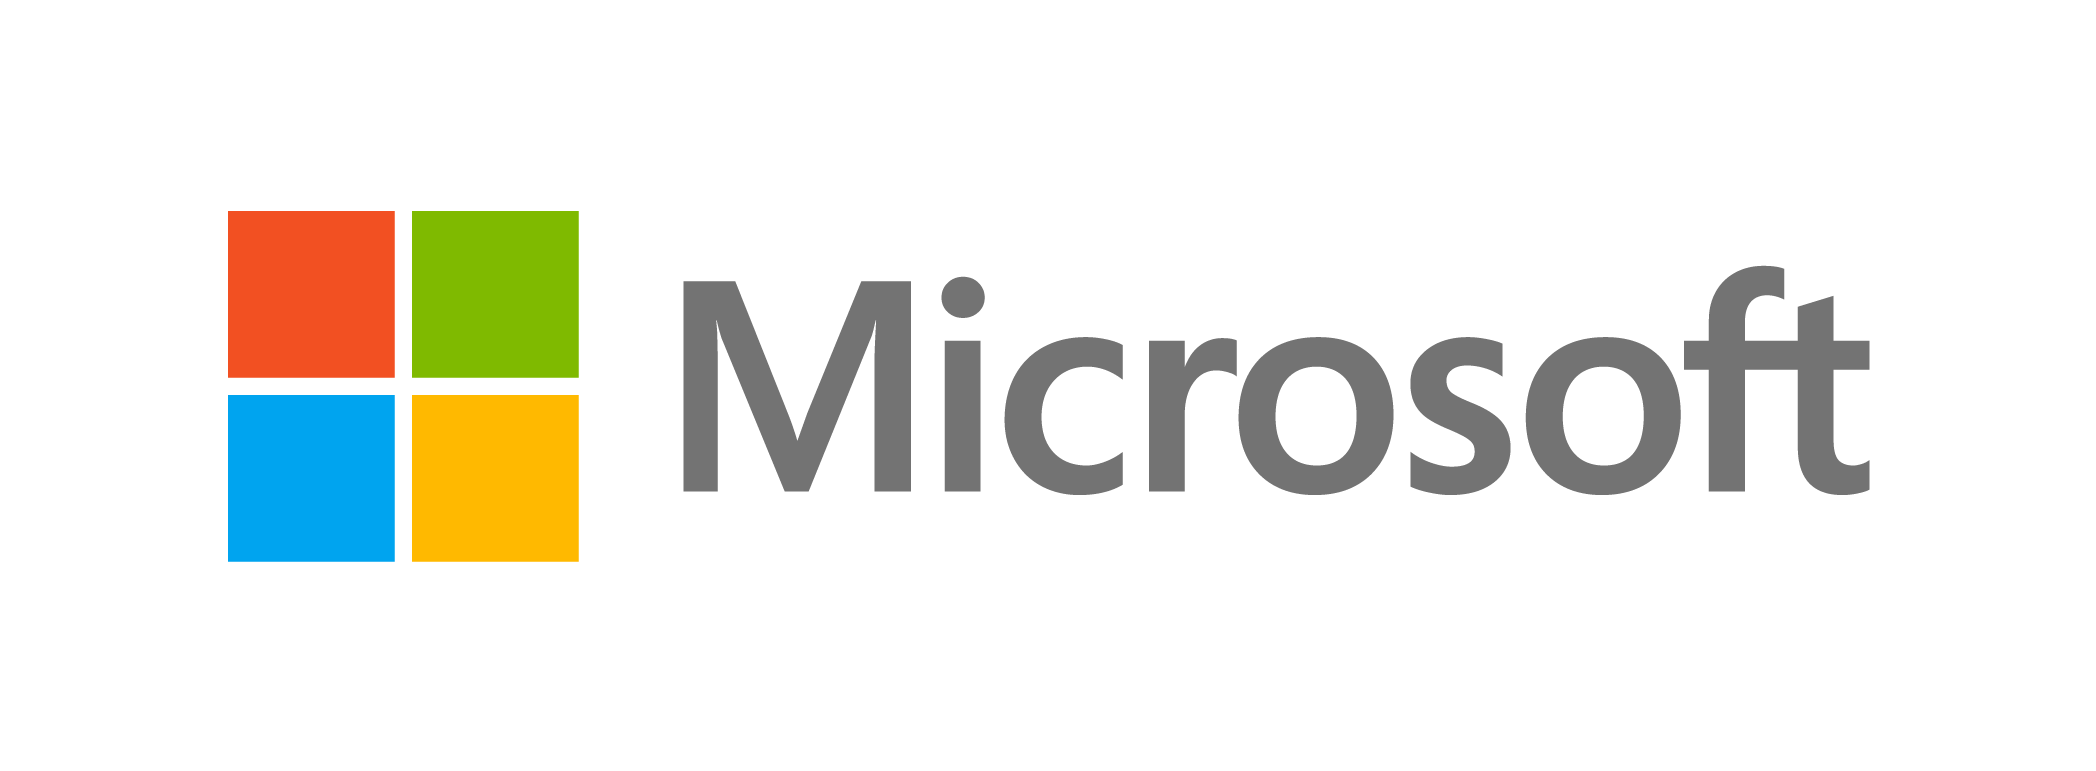 Microsoft's Connected Learning Community Grants Enhance Programs at 35 Local Public and Nonprofit Organizations Image